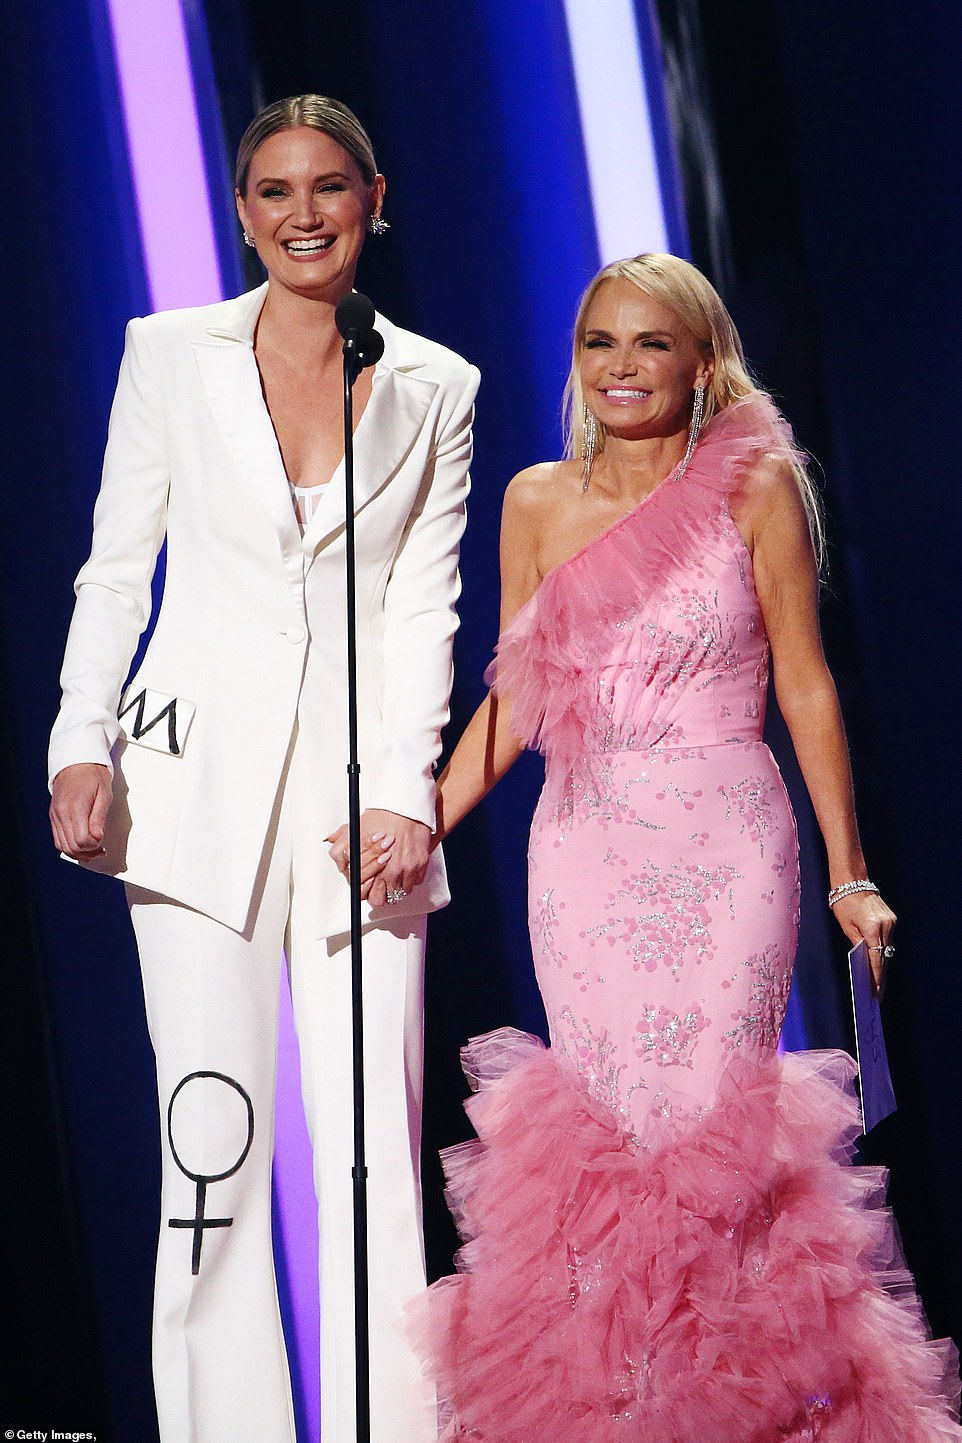 Jokes:Jennifer Nettles and Kristen Chennoweth took the stage to present the Song of the Year Award, as they embraced on stage with some jokes